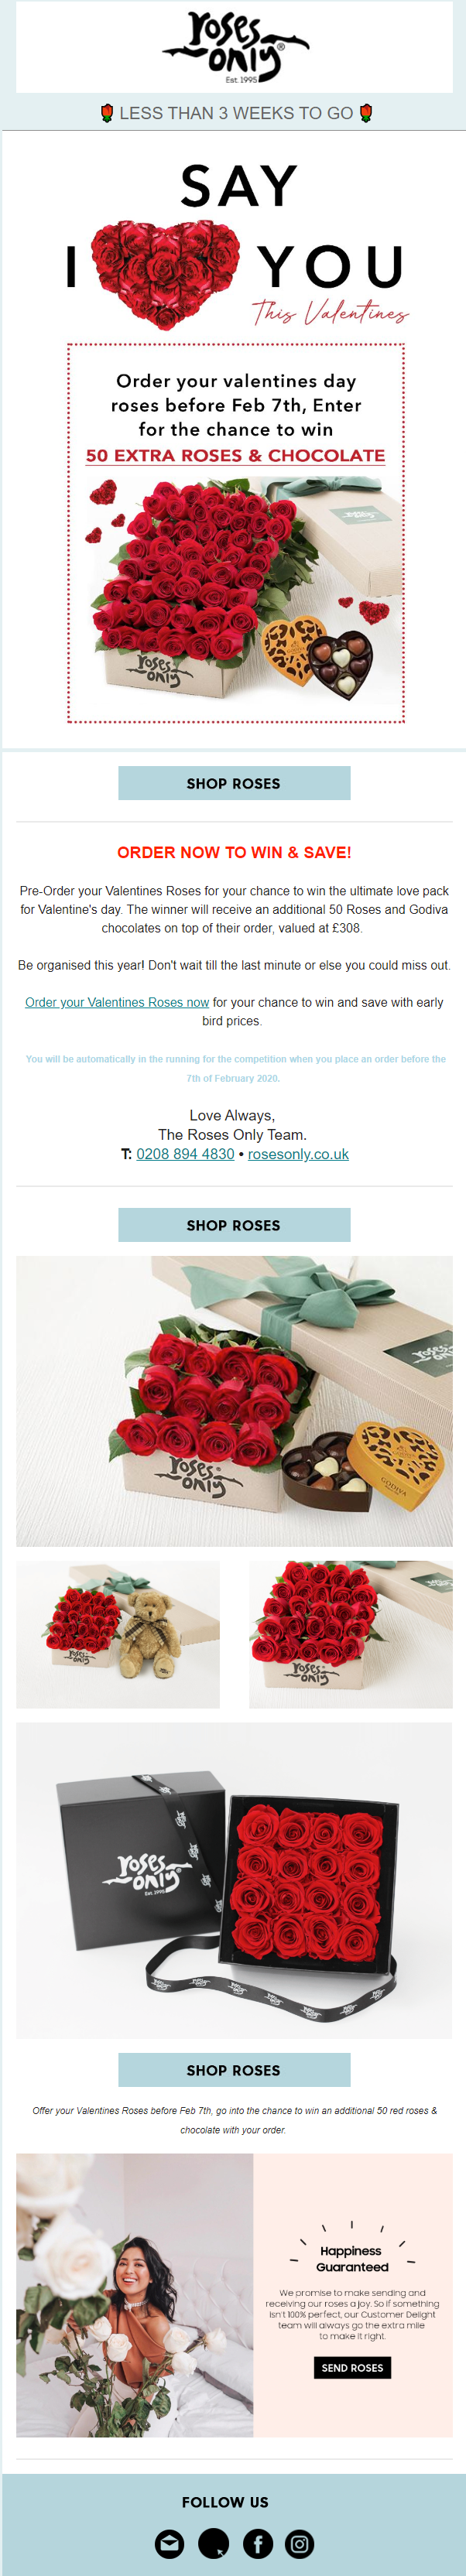 Roses-only-uk-less-than-3-weeks-to-go-early-bird-valentines-special